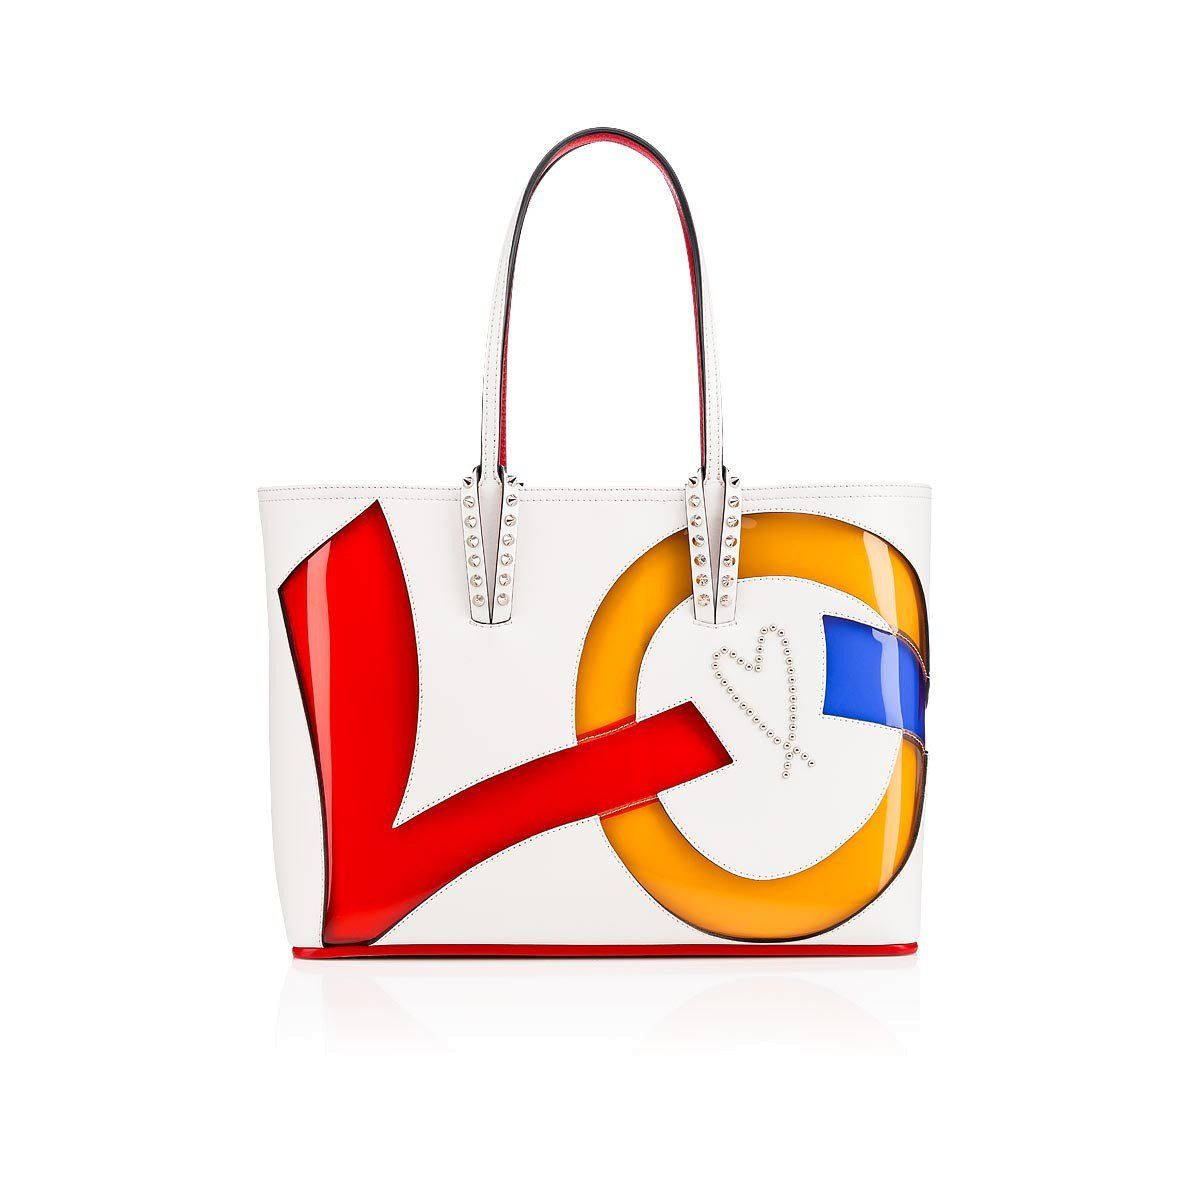 2d71deffc16 Christian Louboutin Cabata Love Tote Bag in 2019 | Products | Small ...